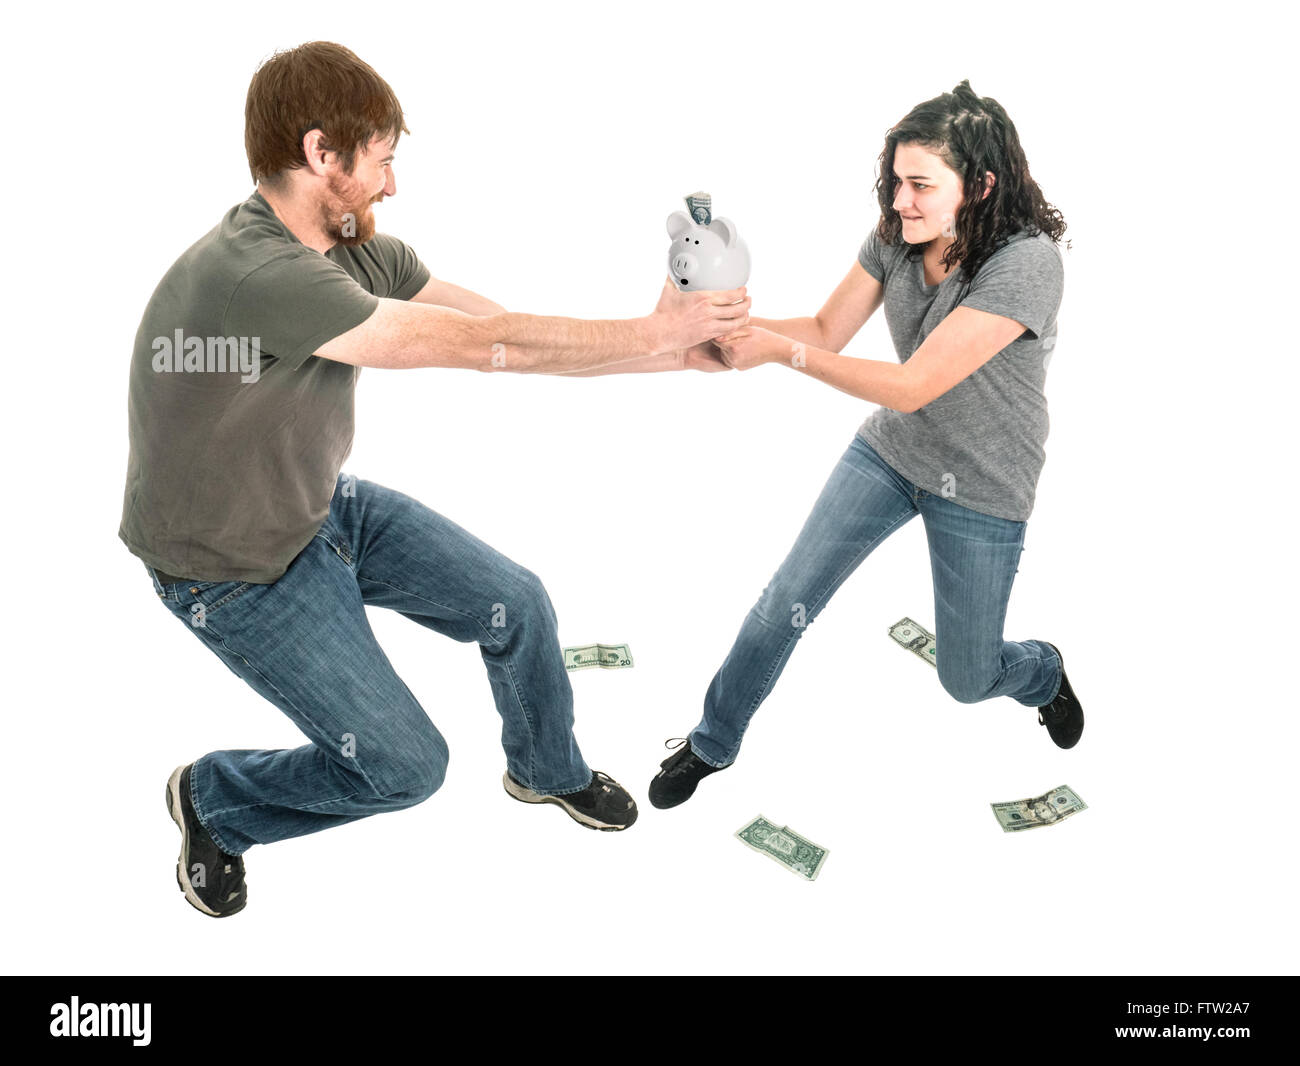 Photograph of a young heterosexual couple engaged in a tug-of-war over control of the piggy bank. - Stock Image